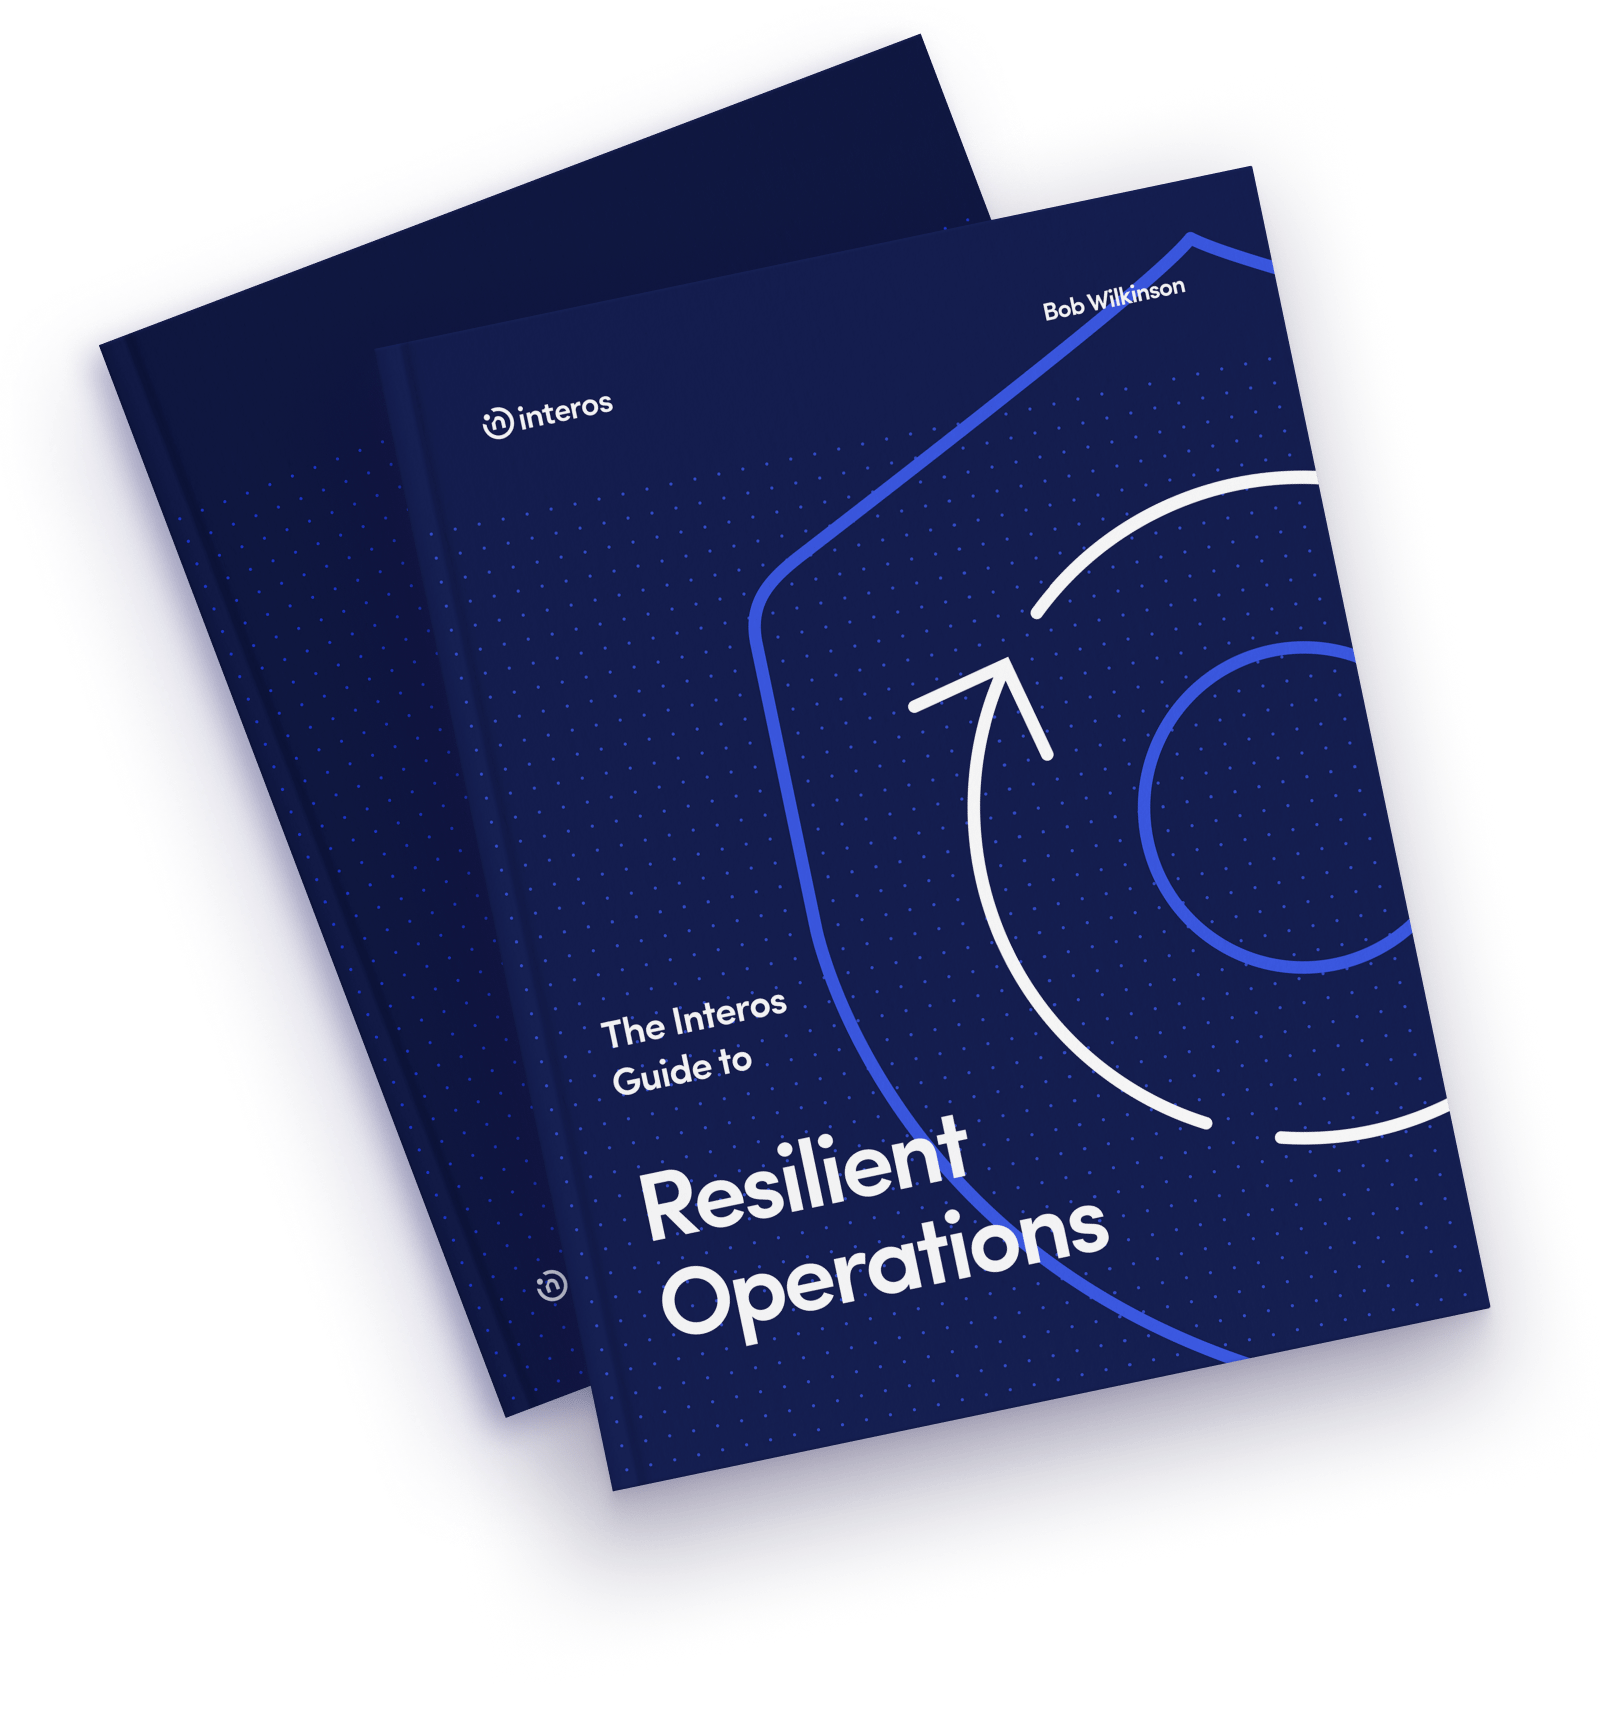 Interos Announces New Capabilities to Simplify Collection and Sharing of Advanced Supply Chain Risk Information Across Multiple Enterprise Functional Teams